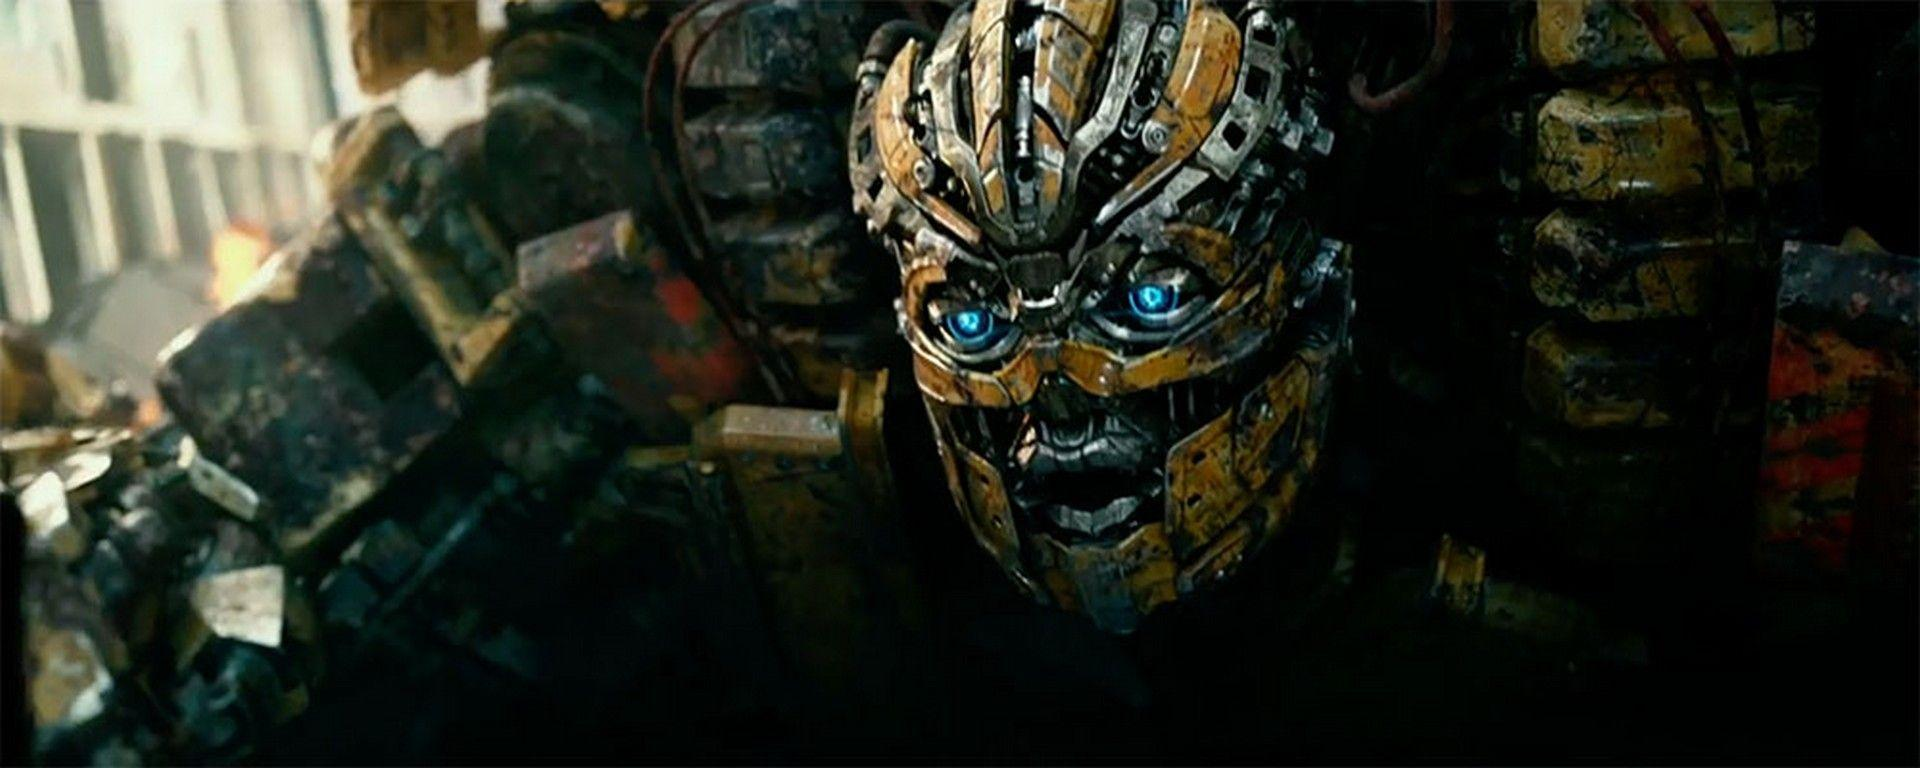 HD Transformers: The Last Knight wallpapers